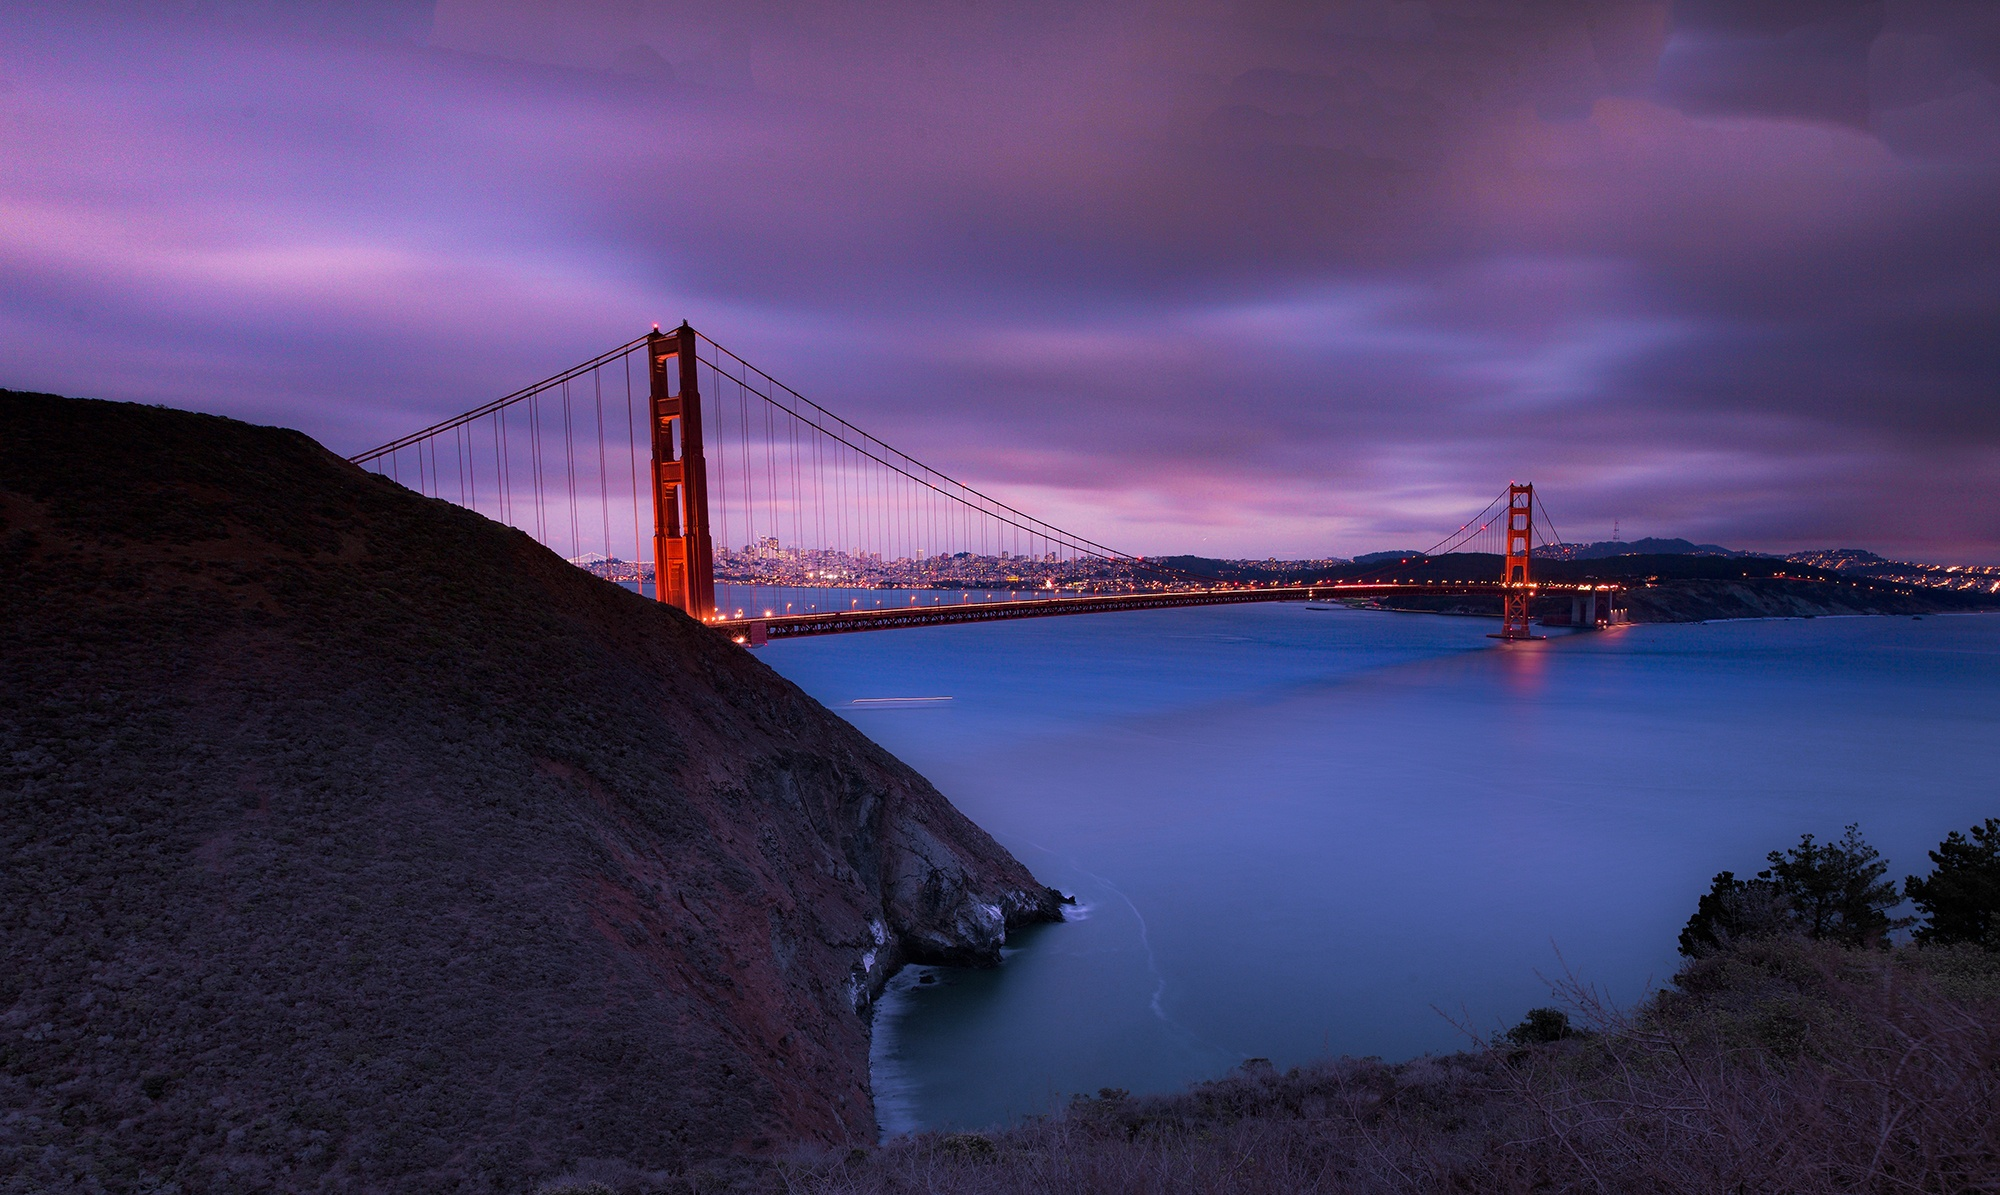 Golden Gate Bridge at Night, San Francisco